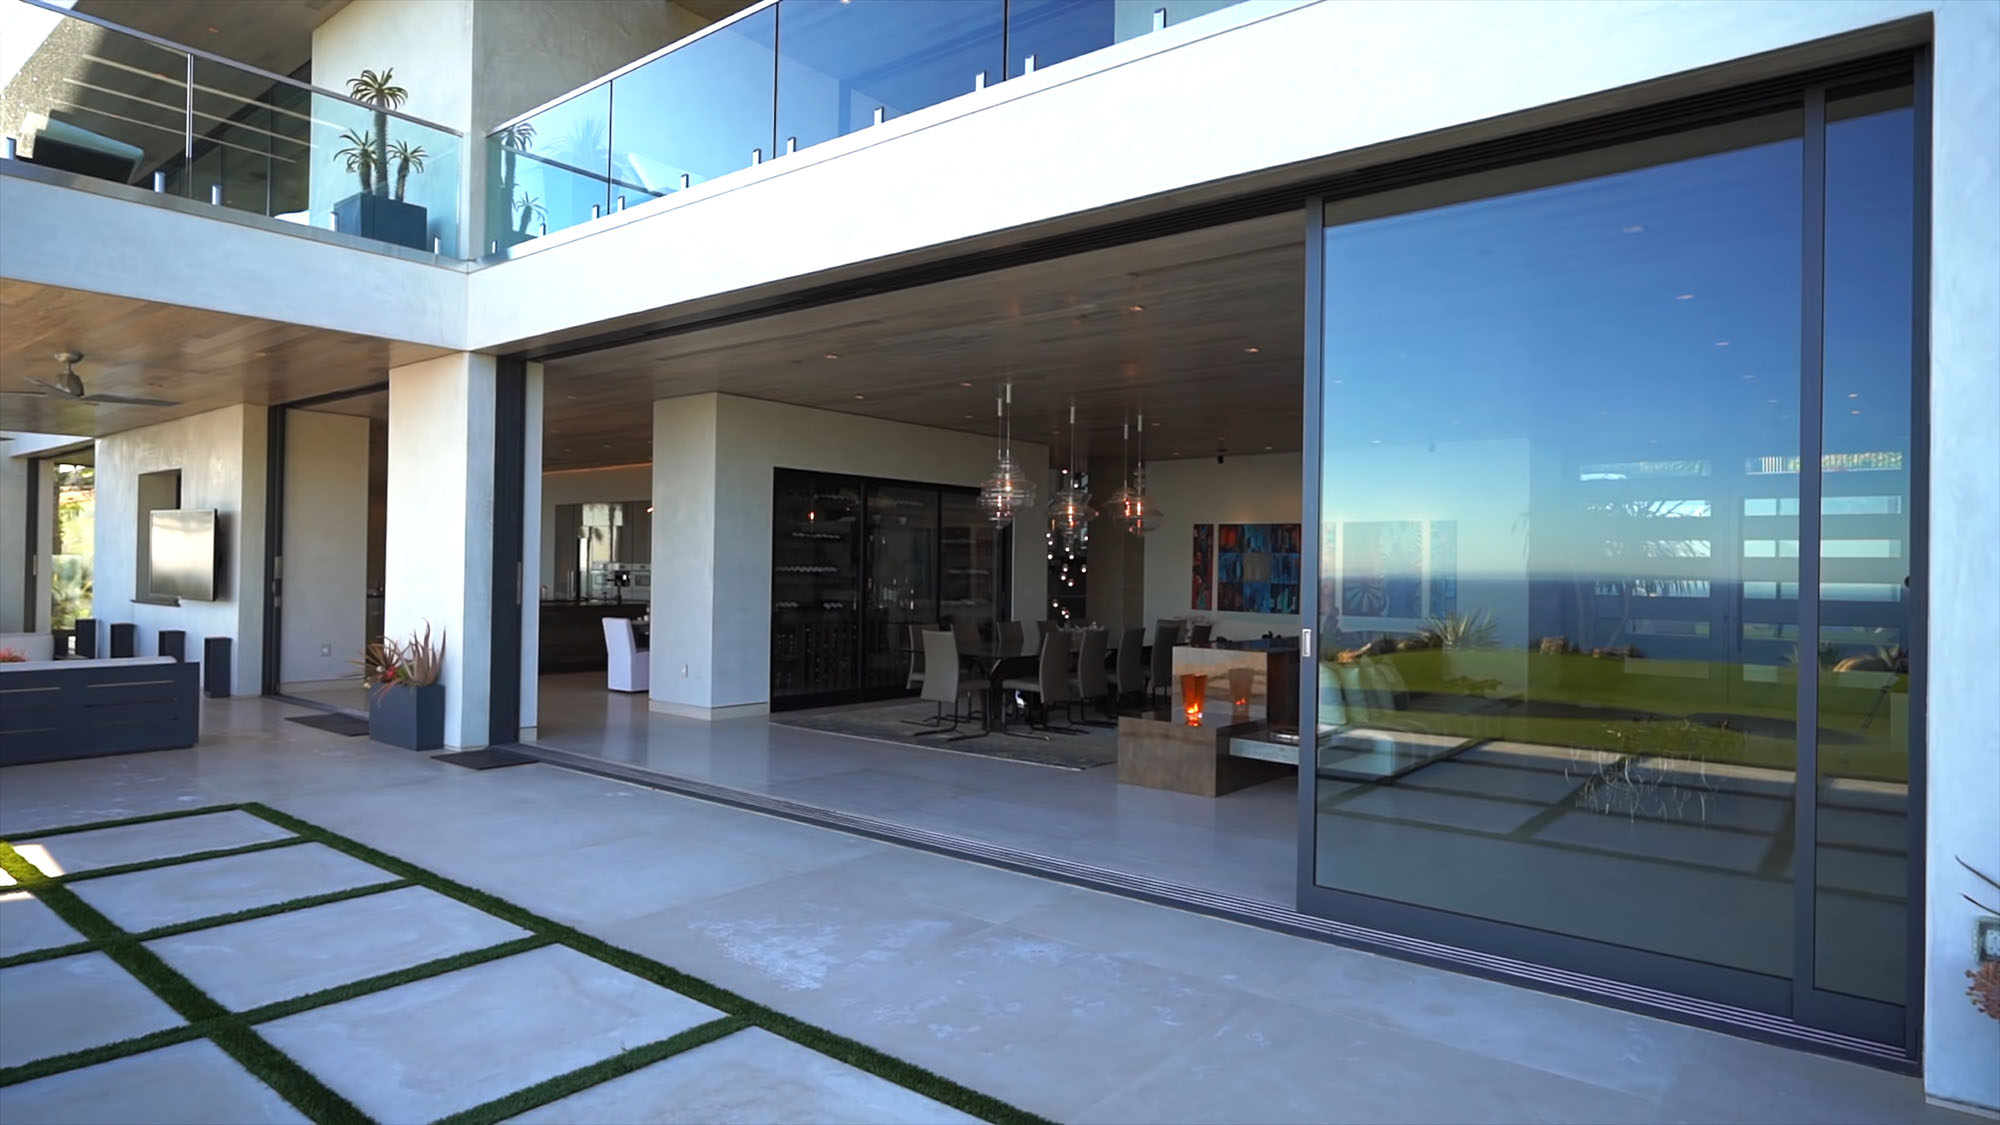 Huge gliding glass doors recessed into the side walls.